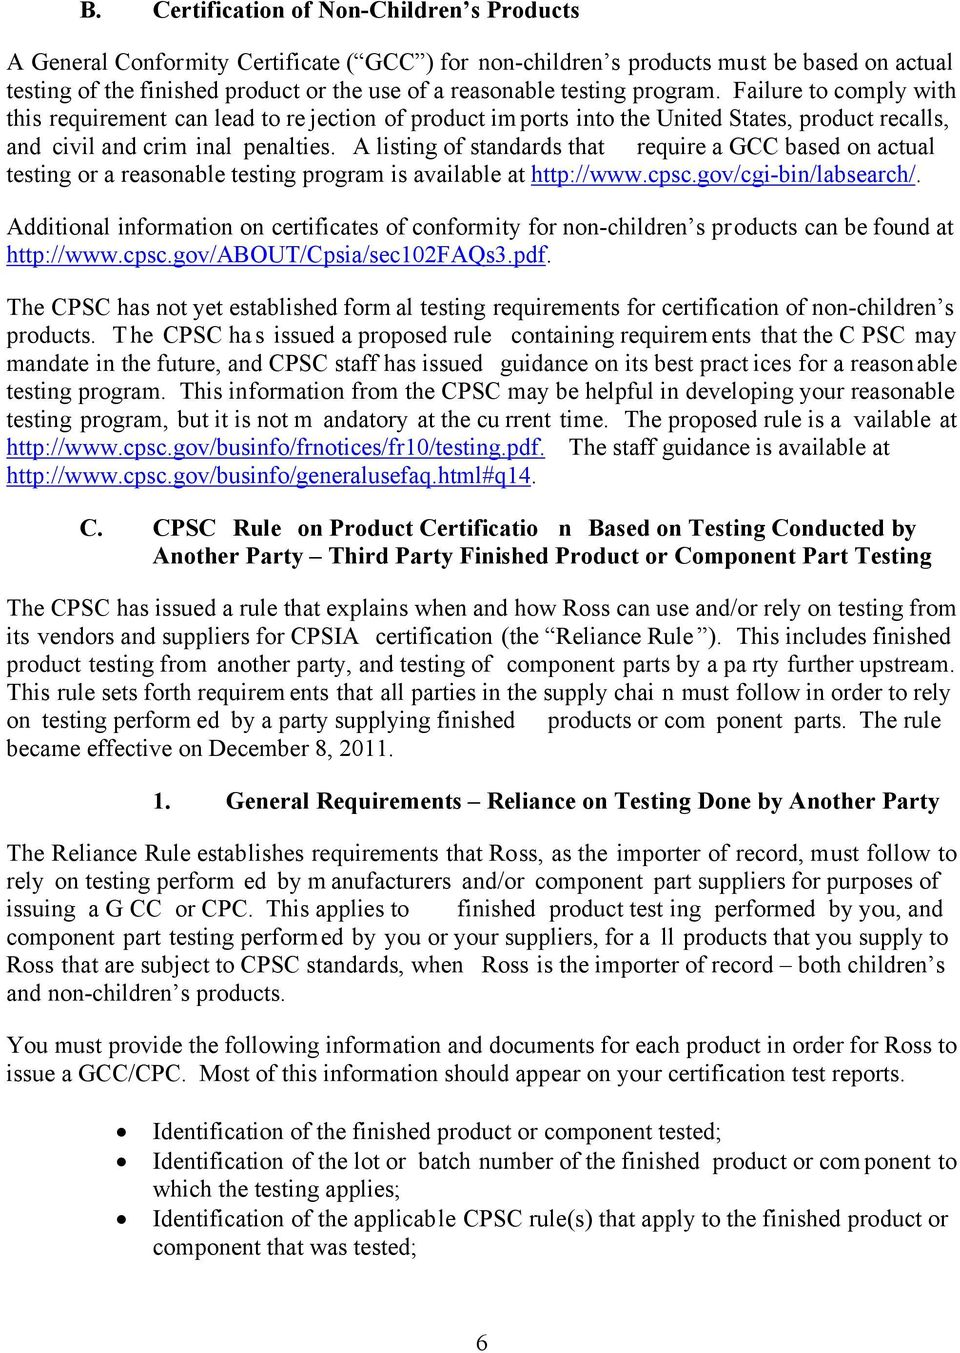 A listing of standards that require a GCC based on actual testing or a reasonable testing program is available at http://www.cpsc.gov/cgi-bin/labsearch/.